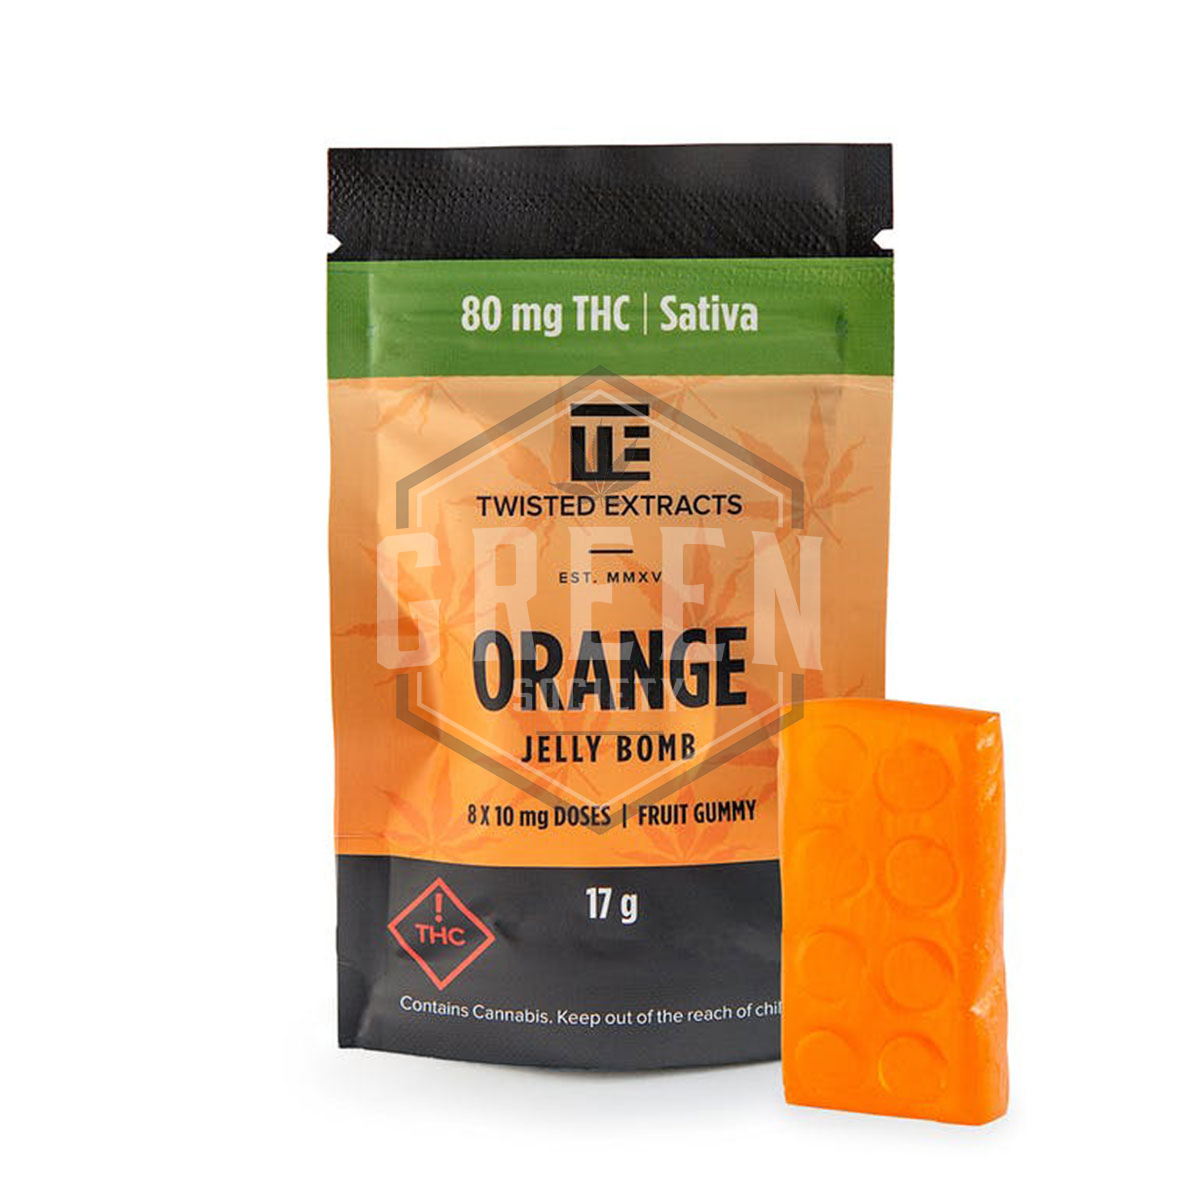 Orange (Sativa THC) Jelly Bomb by Twisted Extracts by Green Society - Image © 2018 Green Society. All Rights Reserved.